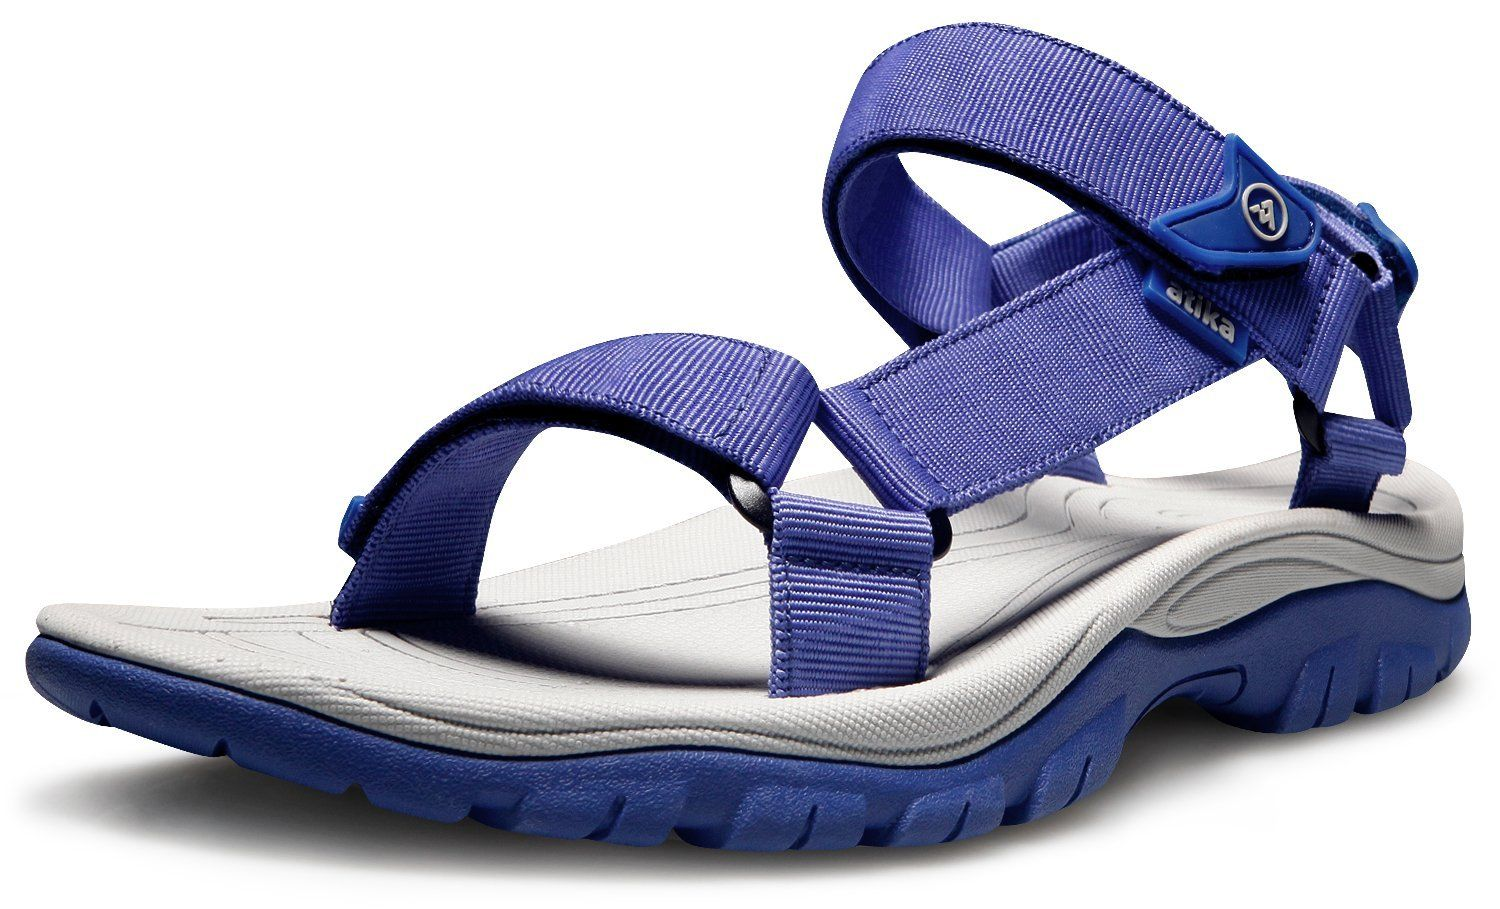 3b5362880 Atika Men s Sport Sandals Maya Trail Outdoor Water Shoes M110    Remarkable  product available now.   Outdoor sandals